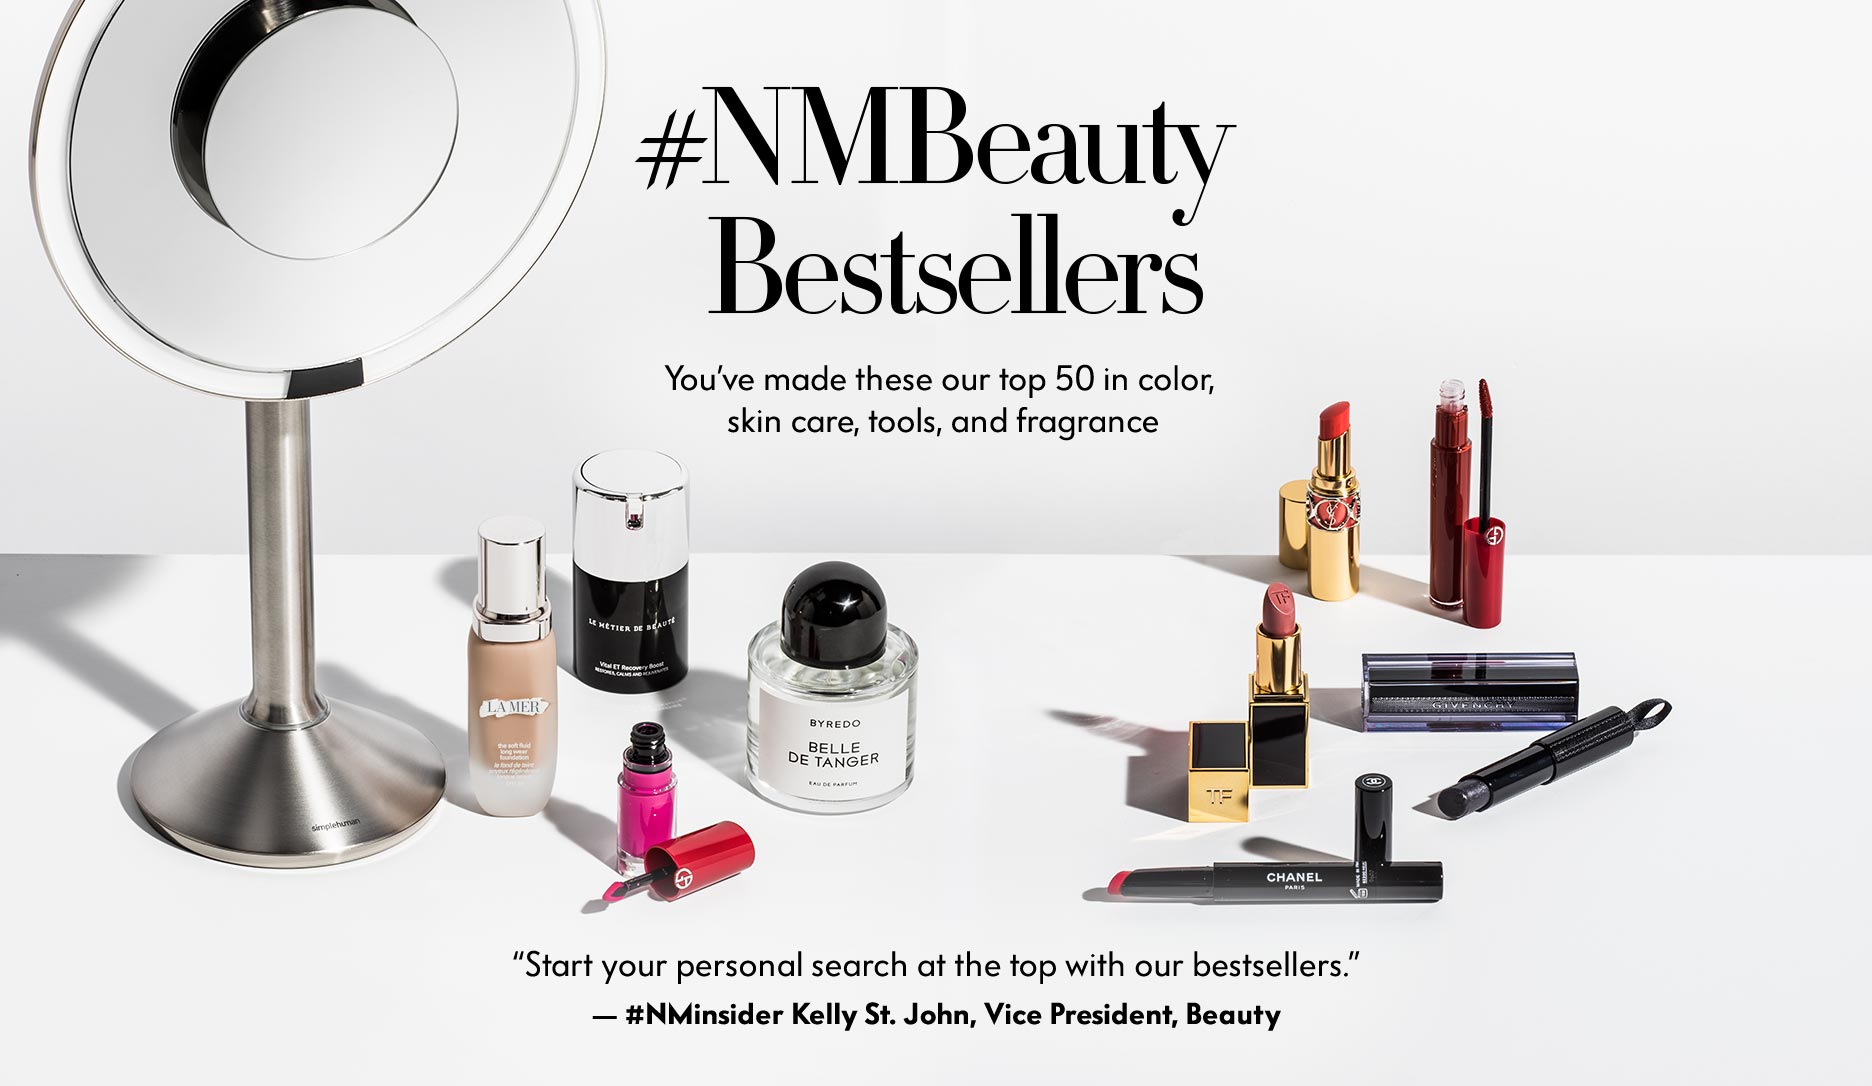 #NMBeauty Best Sellers - You've made these our top 50 in color, skin care, tools, and fragrance